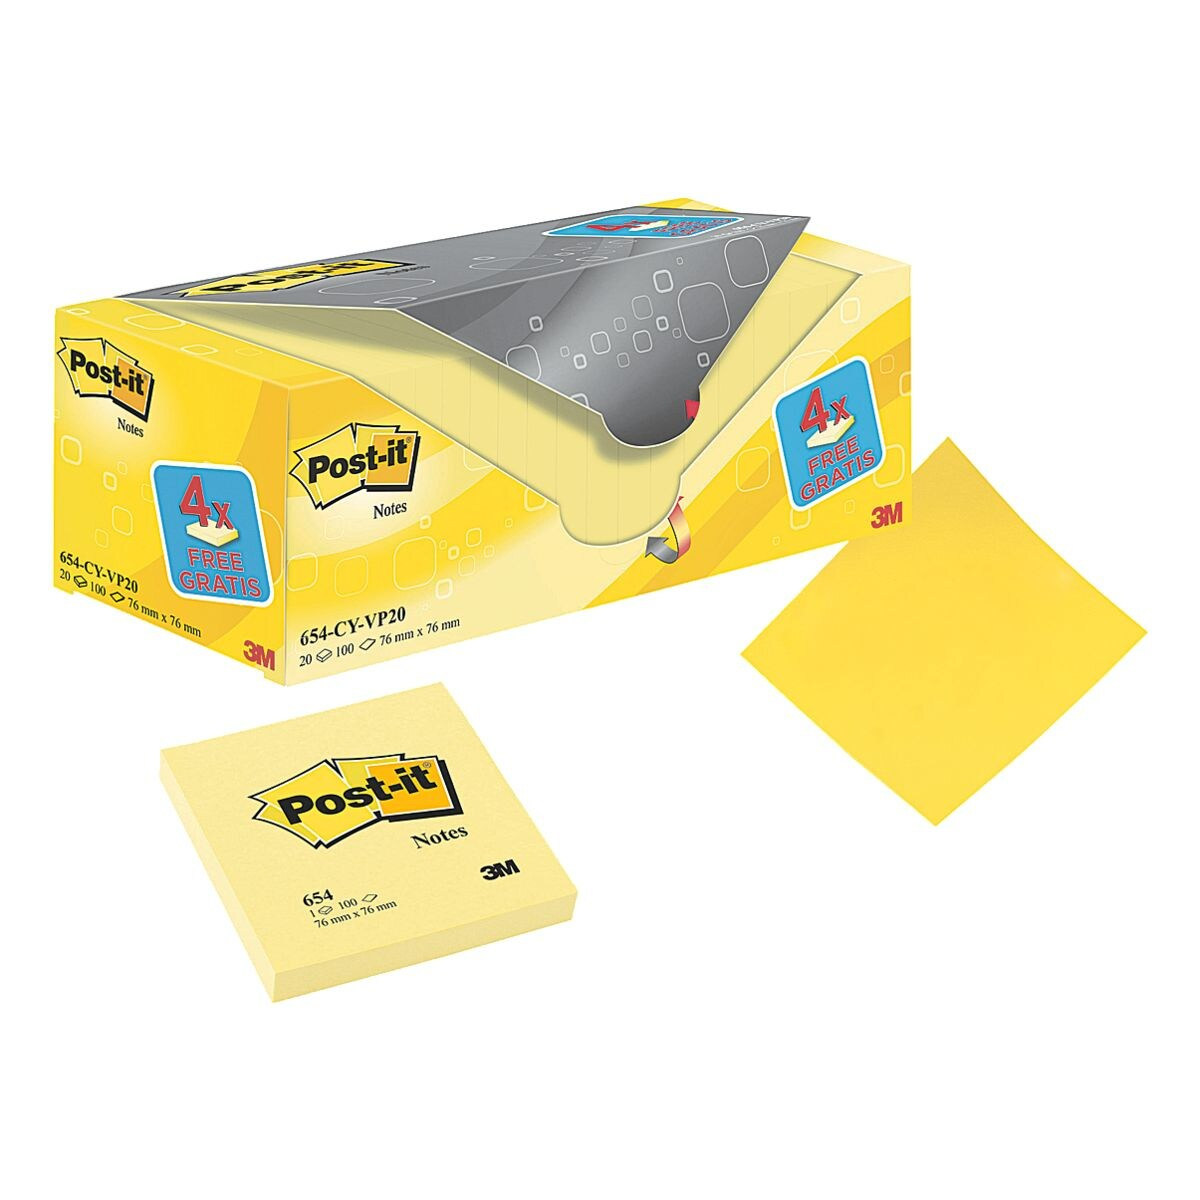 20x Post-it Notes bloc de notes repositionnables Notes 7,6 x 7,6 cm, 2000 feuilles au total, jaune